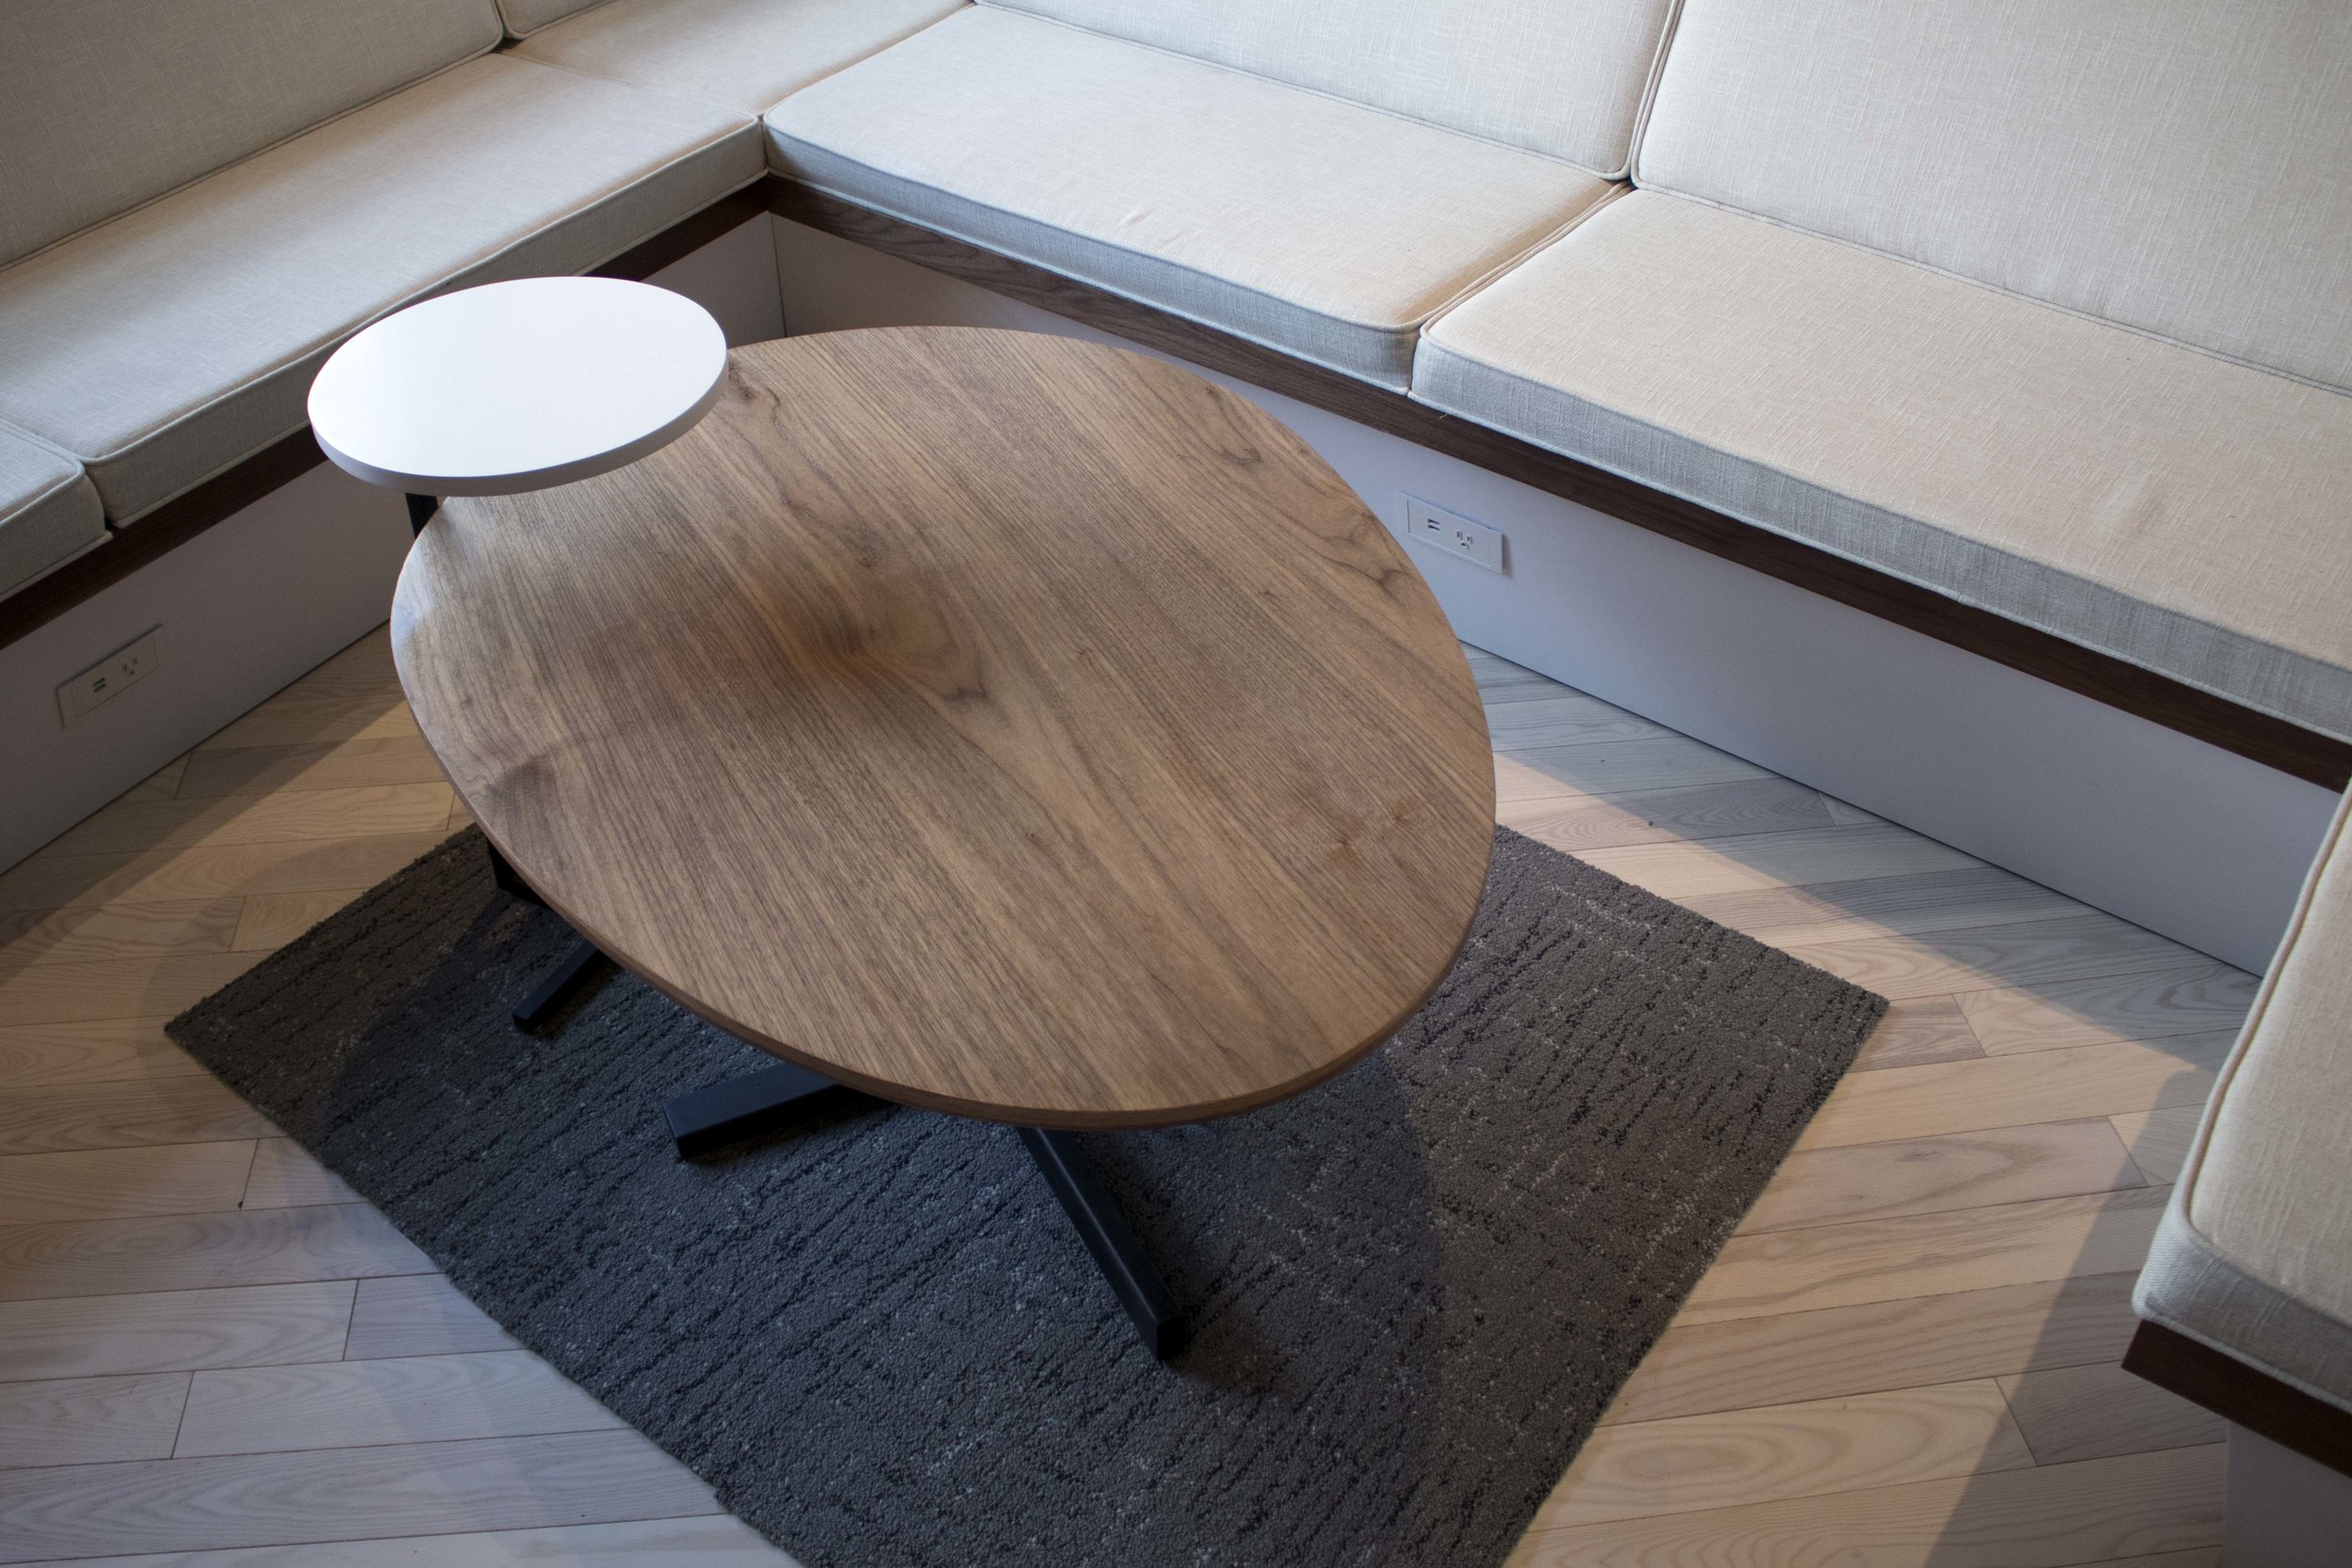 Walnut Egg Coffe Table with White Round Side Table.